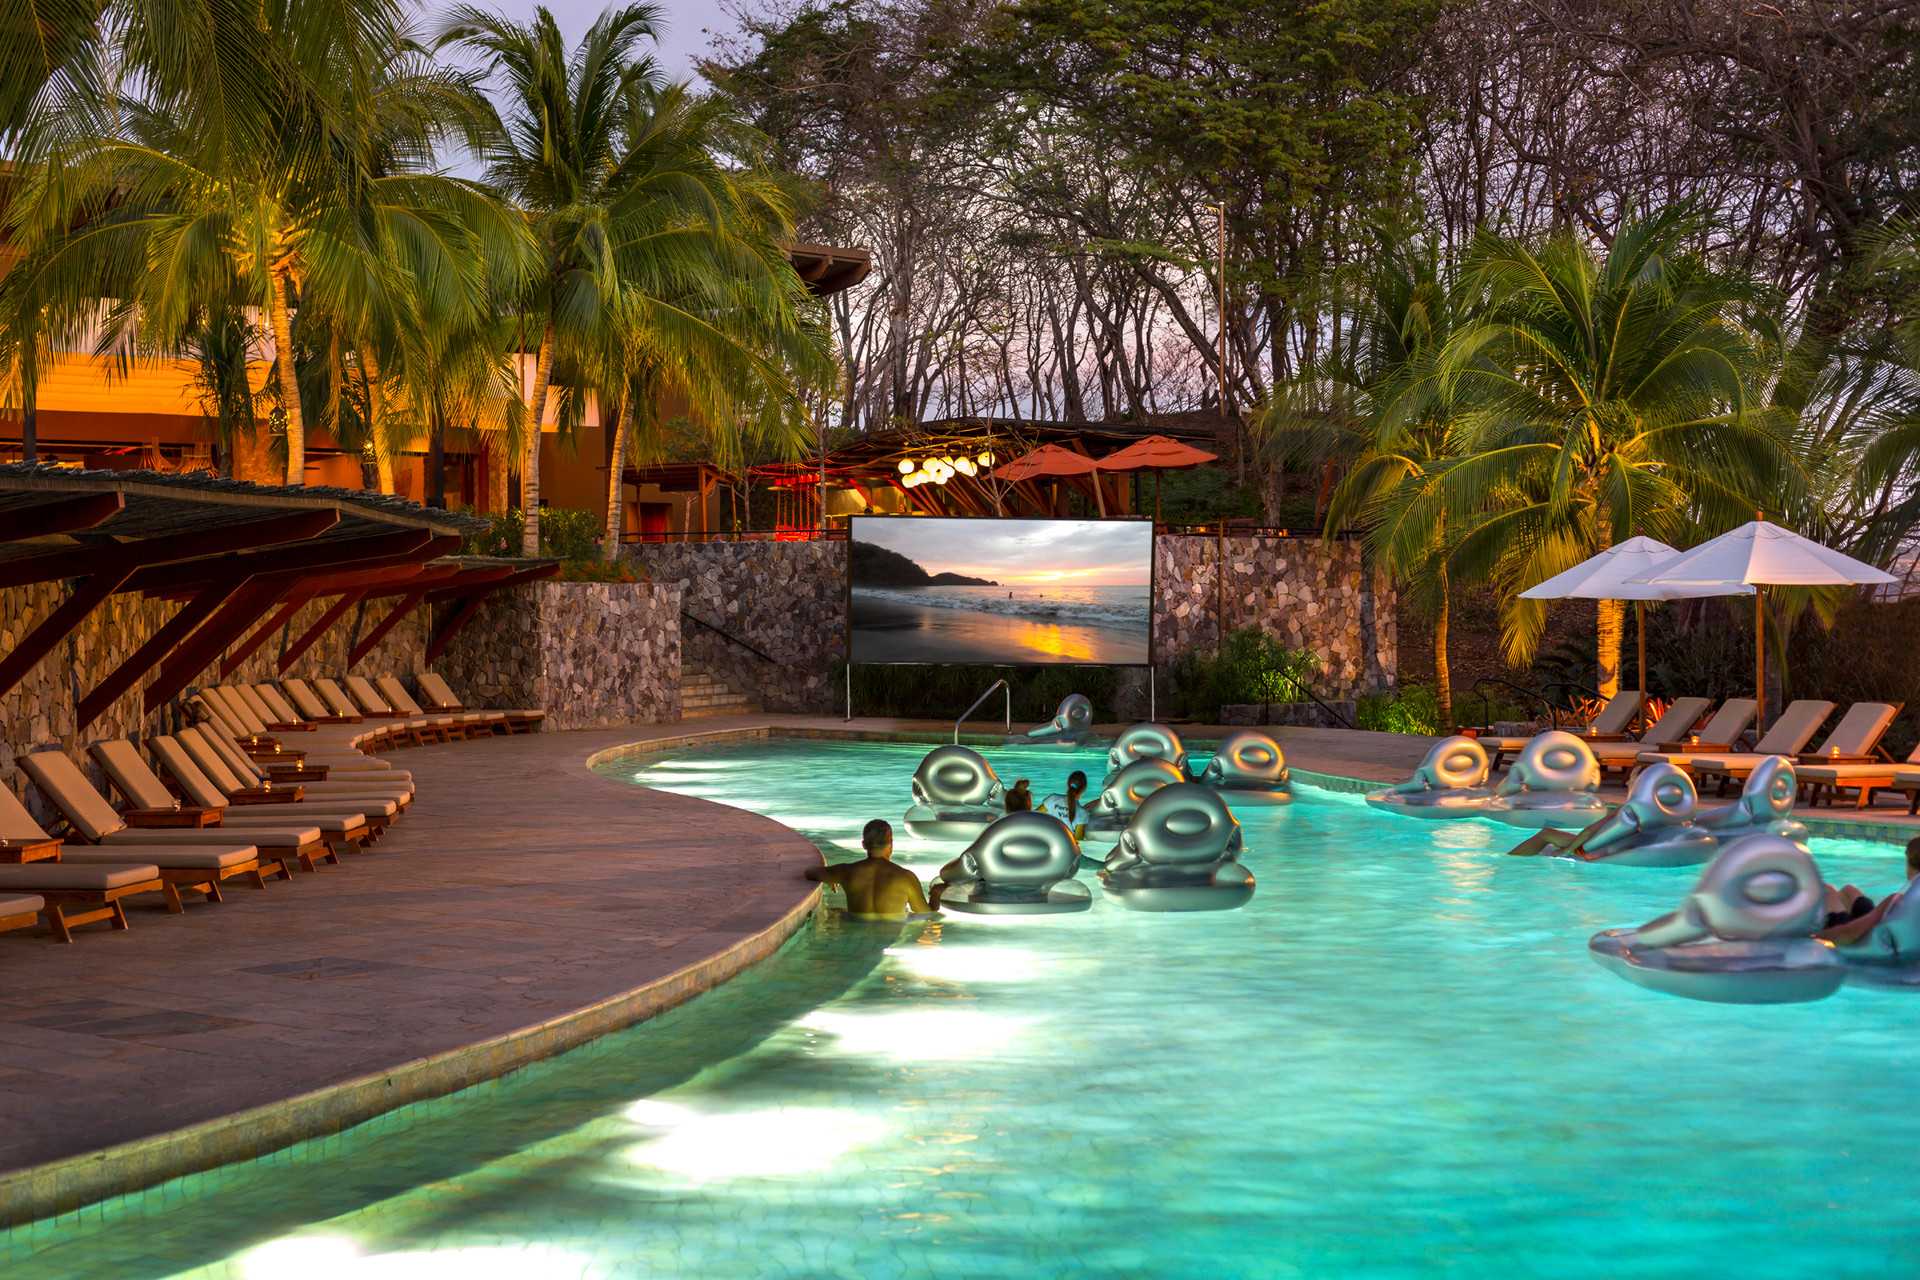 South_America_Costa_Rica_Four_Seasons_Pool.jpg